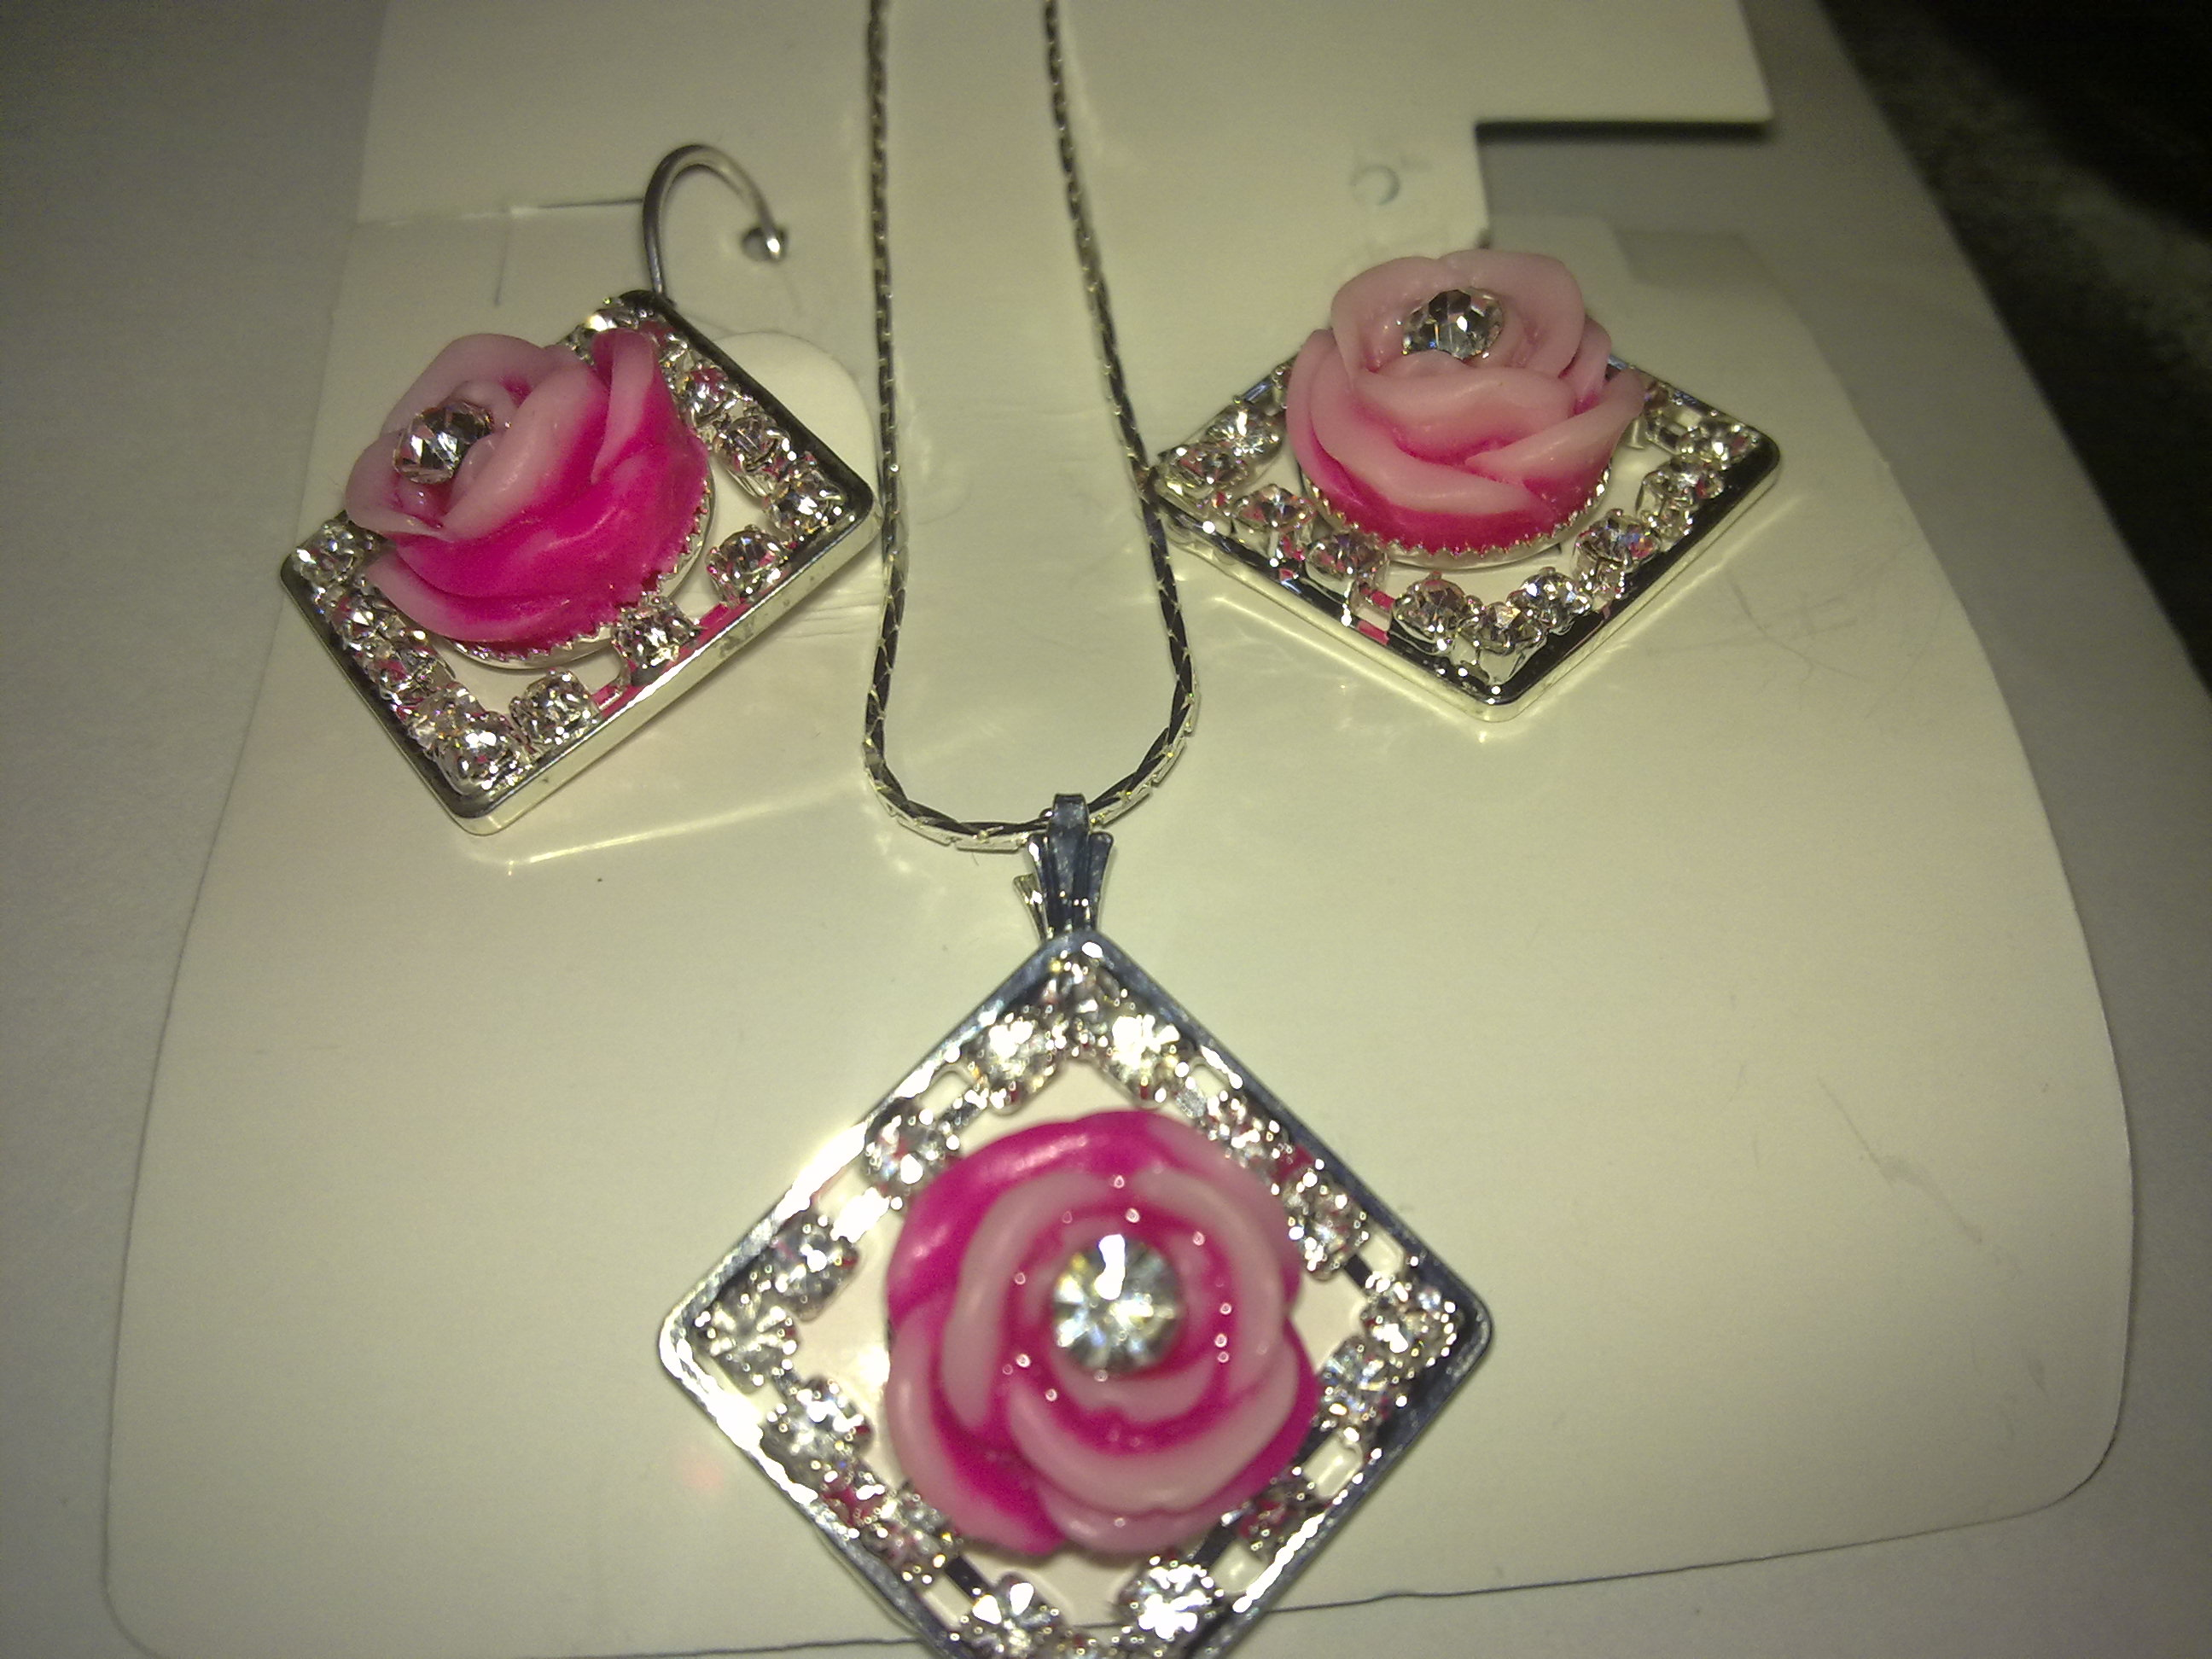 Rose earings and necklace jewellery